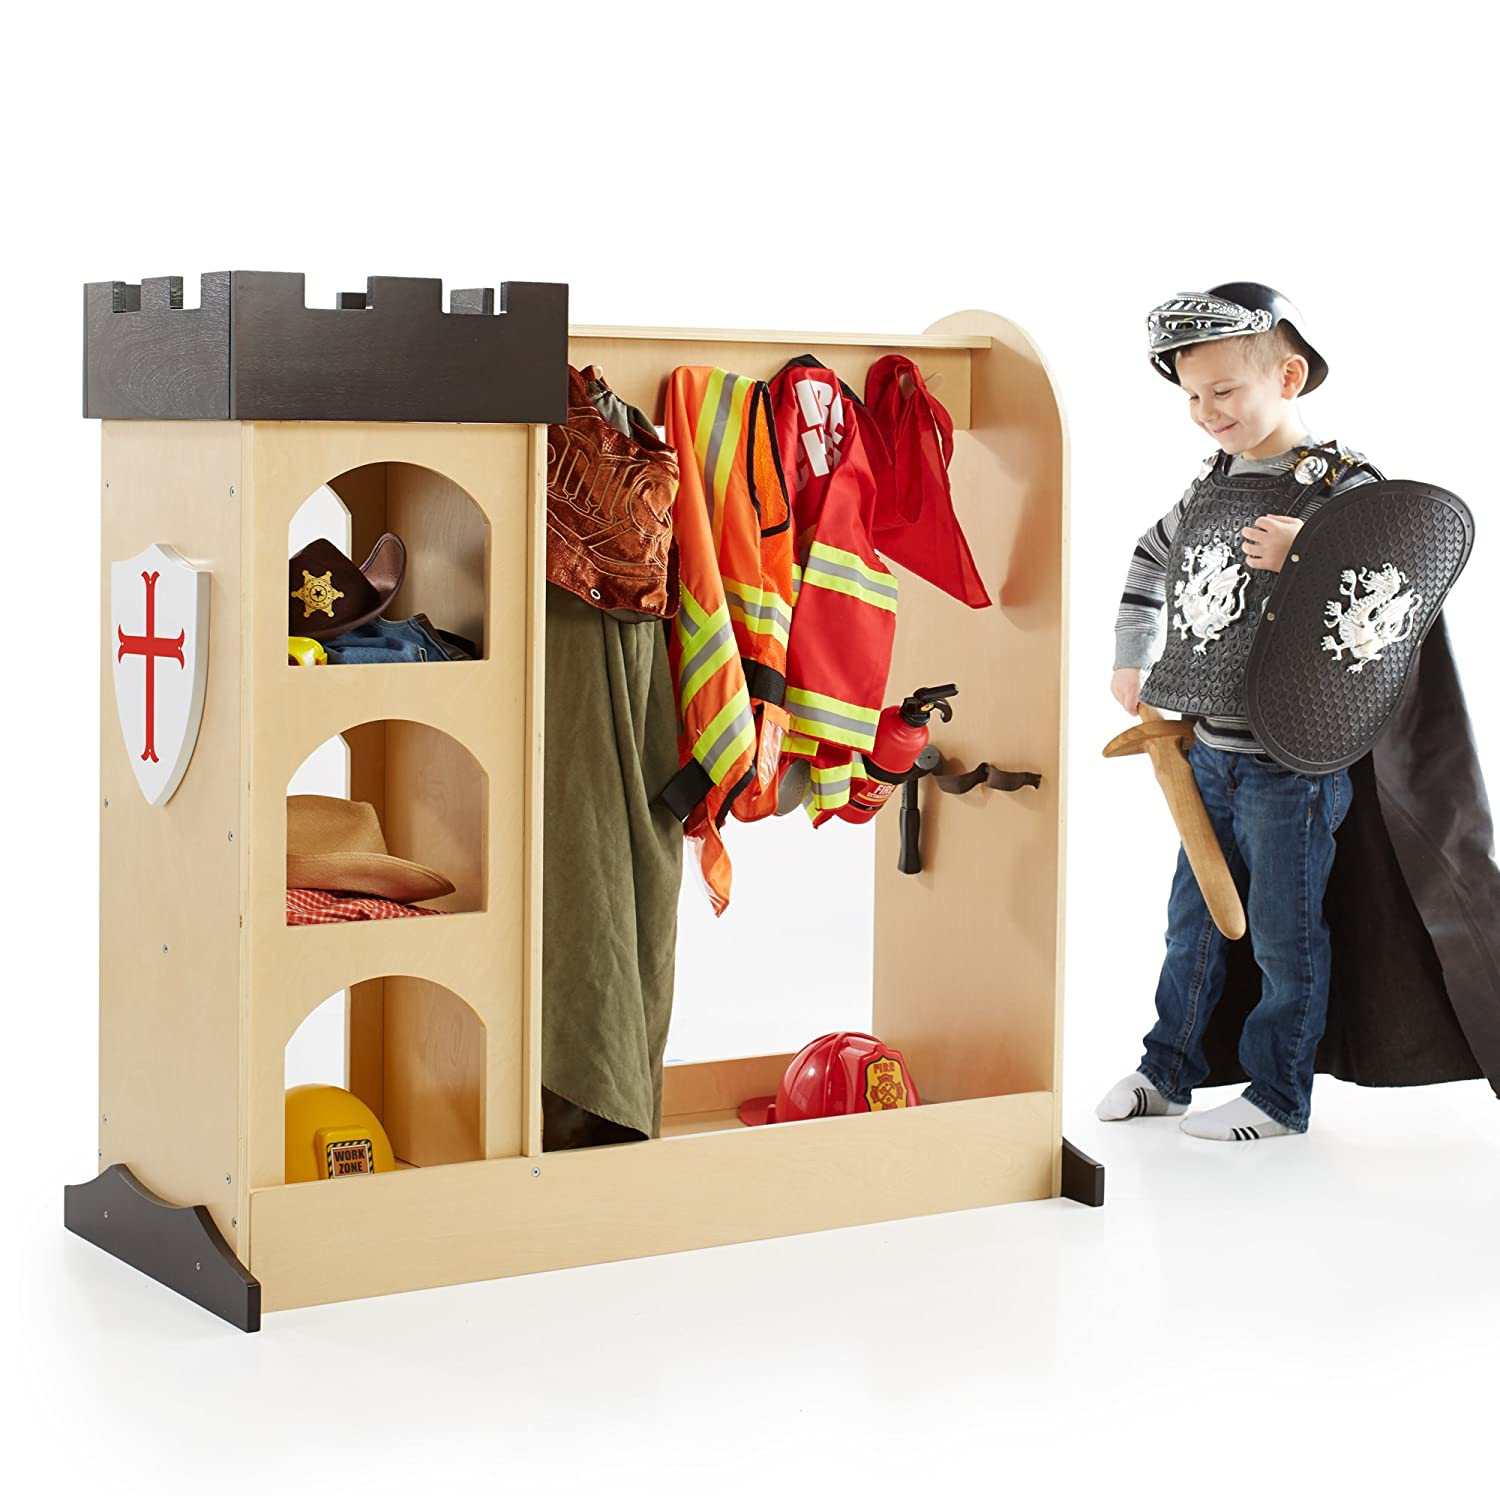 Guidecraft Castle Dramatic Play Storage: Themed Dresser with Mirror and Safe Hooks, Dress Up Armoire for Kids - Toddlers Costume Organizer, Children Playroom Furniture G99400